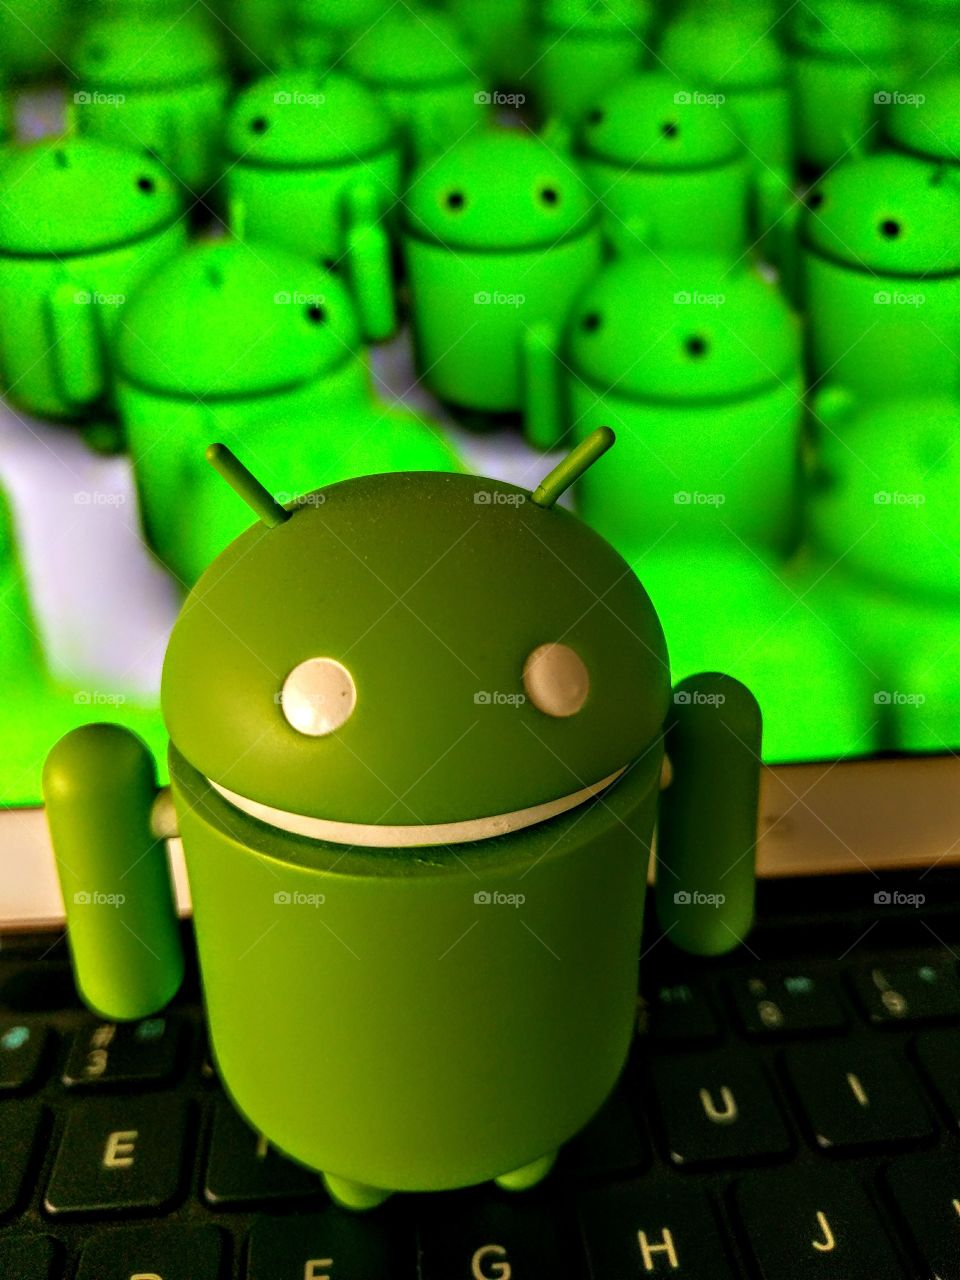 Android party!